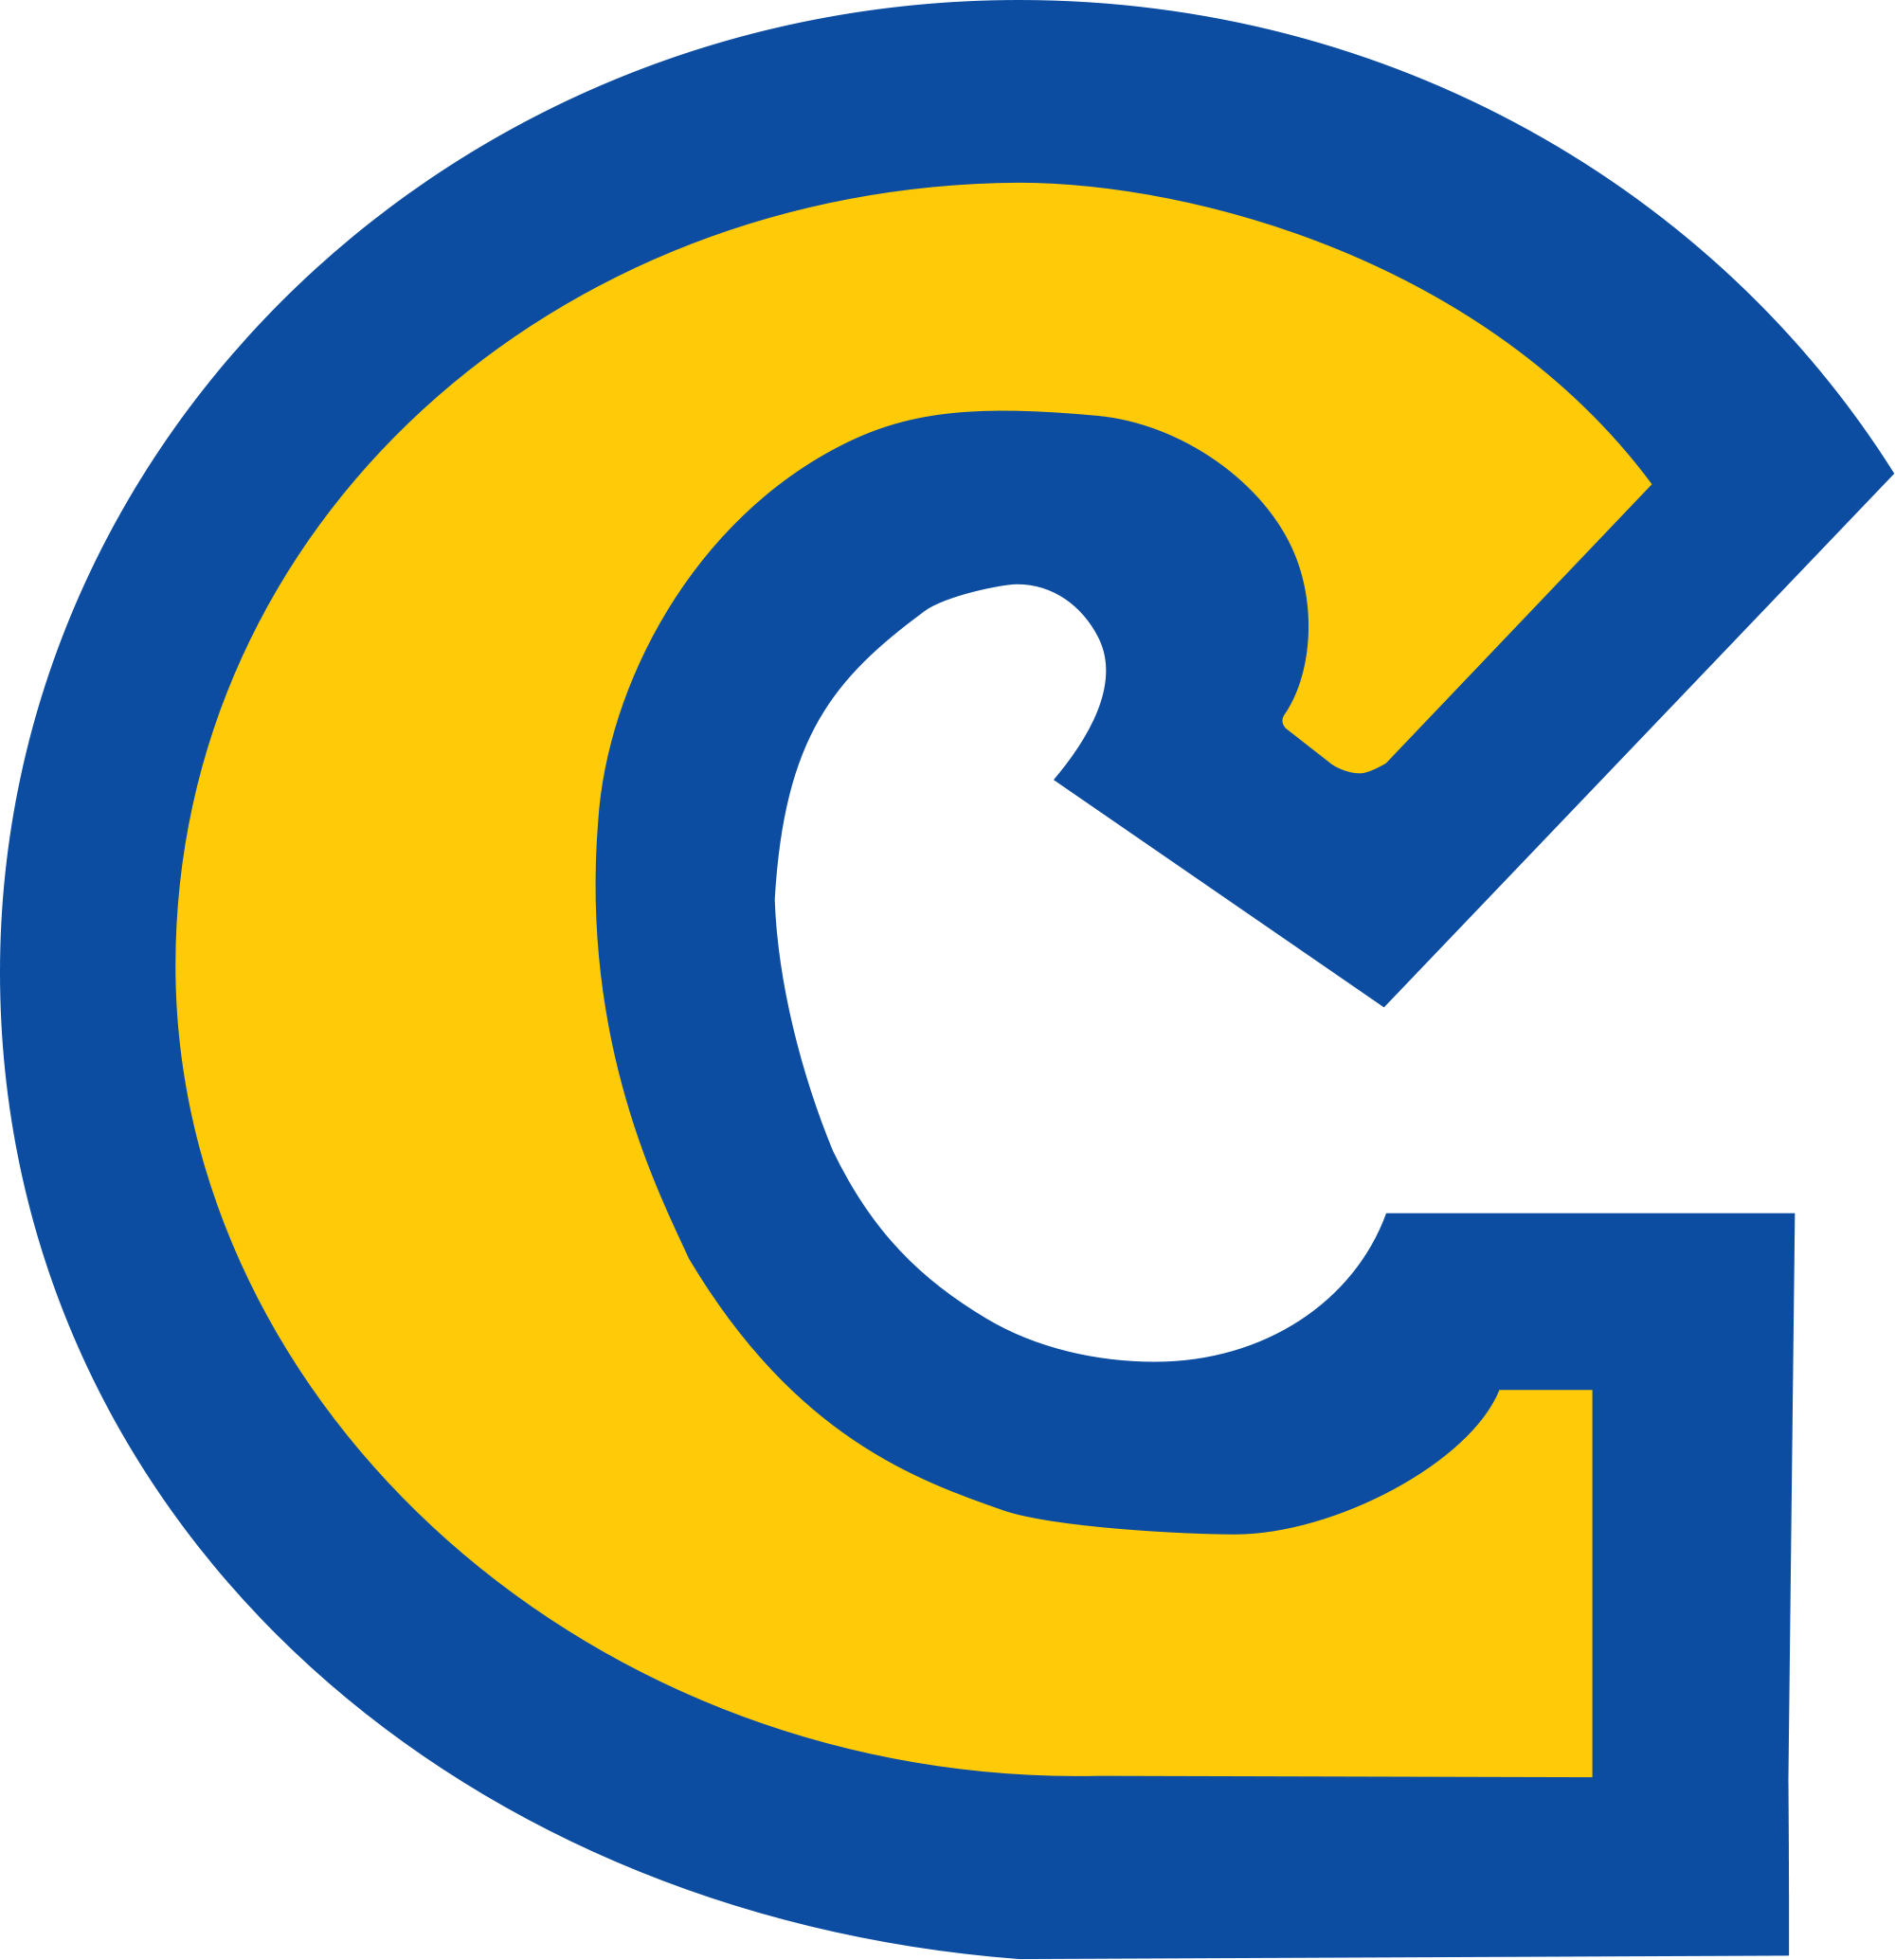 Blue and yellow c Logos.